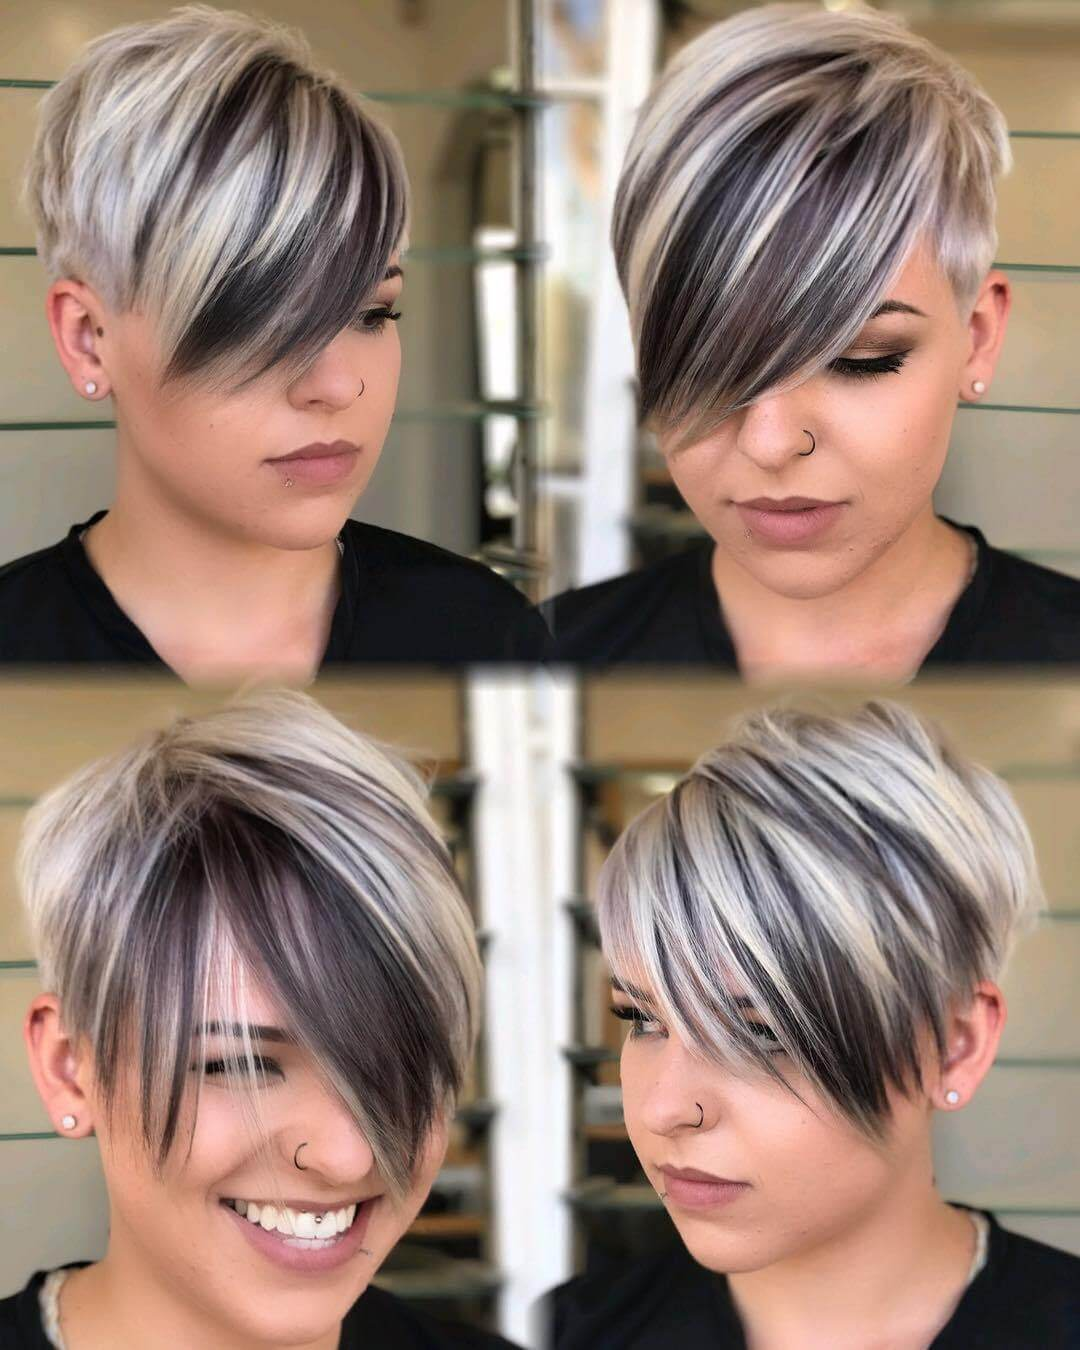 Short Pixie Cuts For Round Fat Faces 25